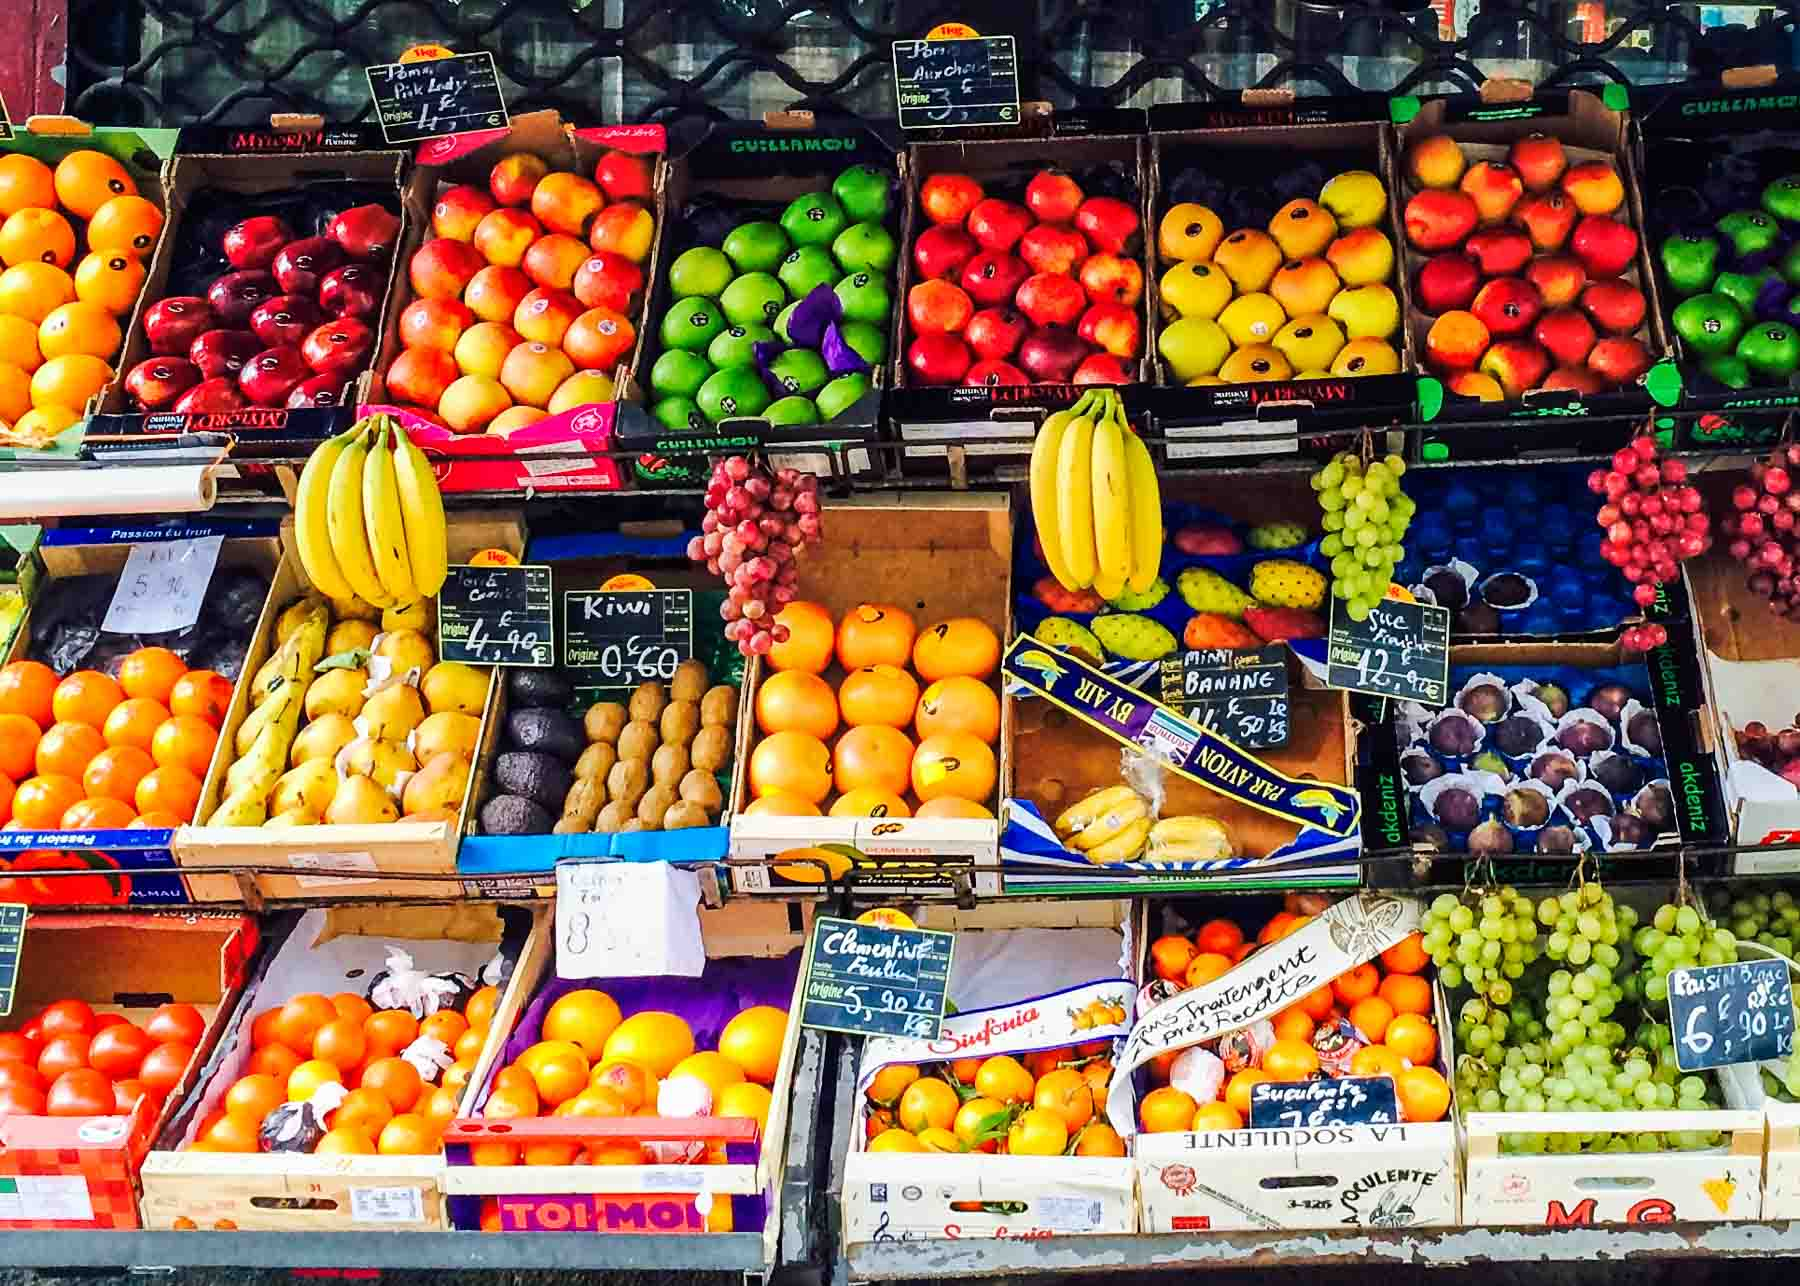 Display of fruit in a market.